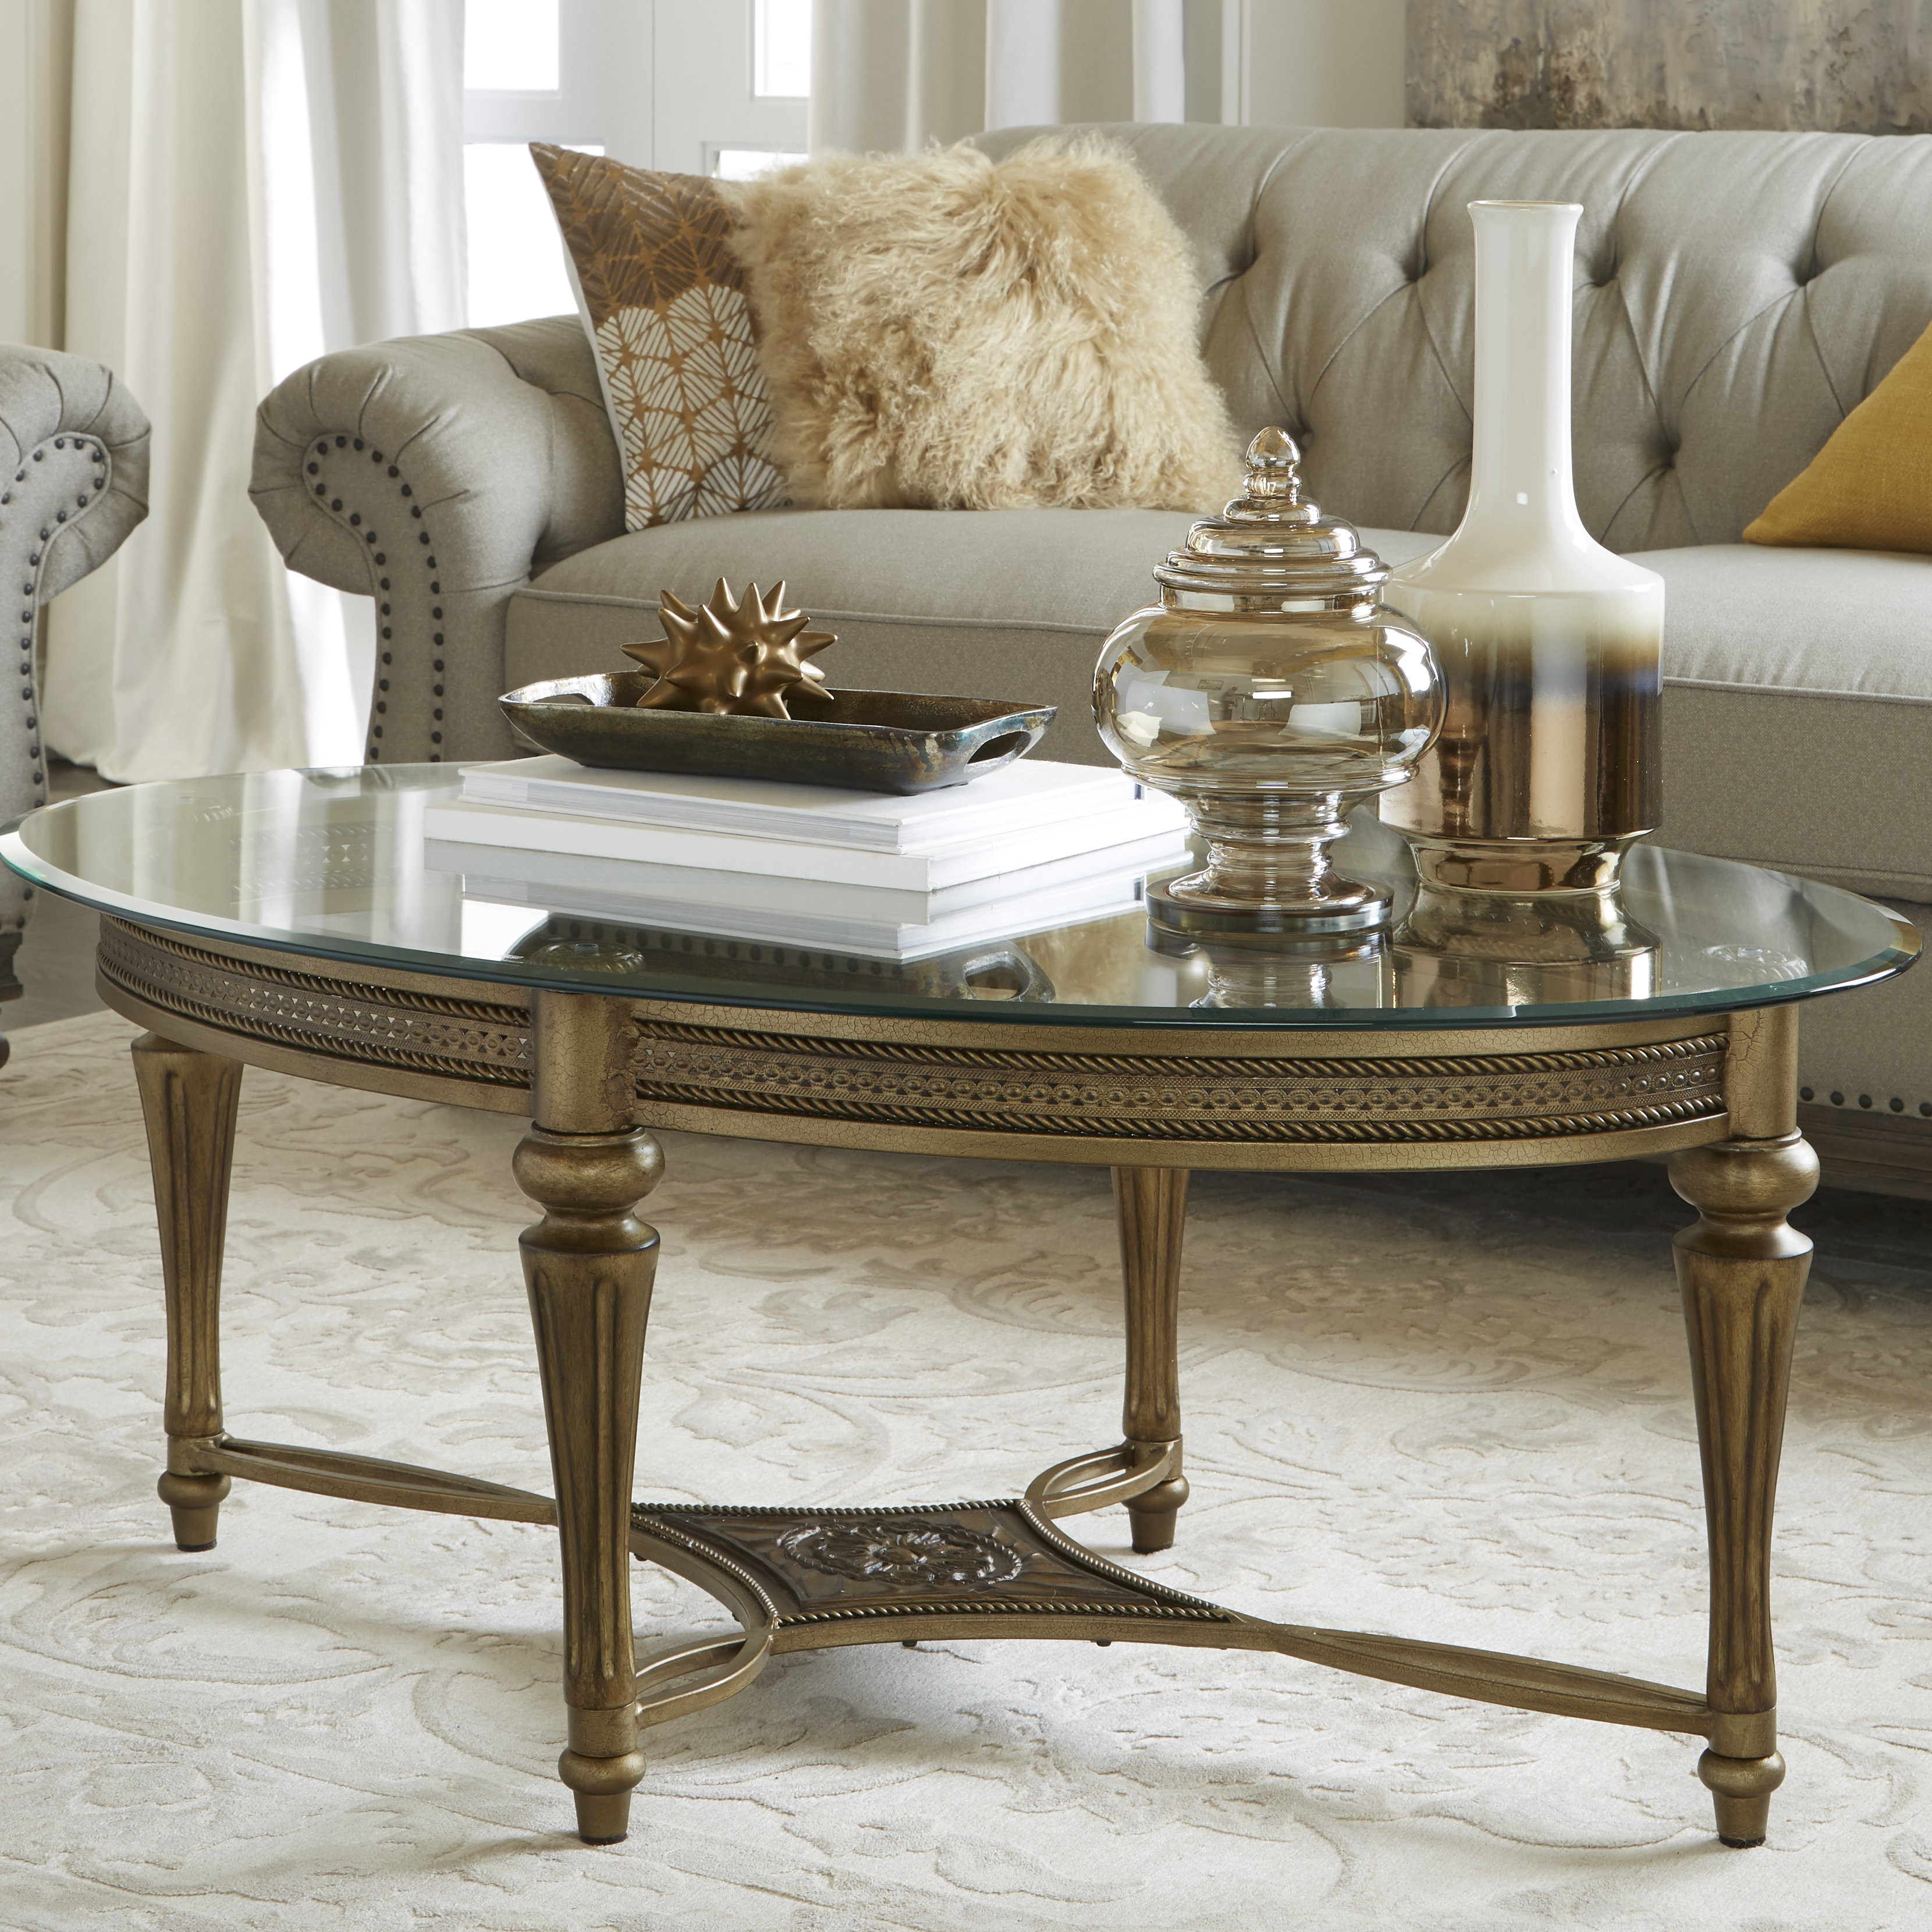 2020 Queener 5 Piece Dining Sets Inside Astoria Grand Weisman Coffee Table & Reviews (View 3 of 25)